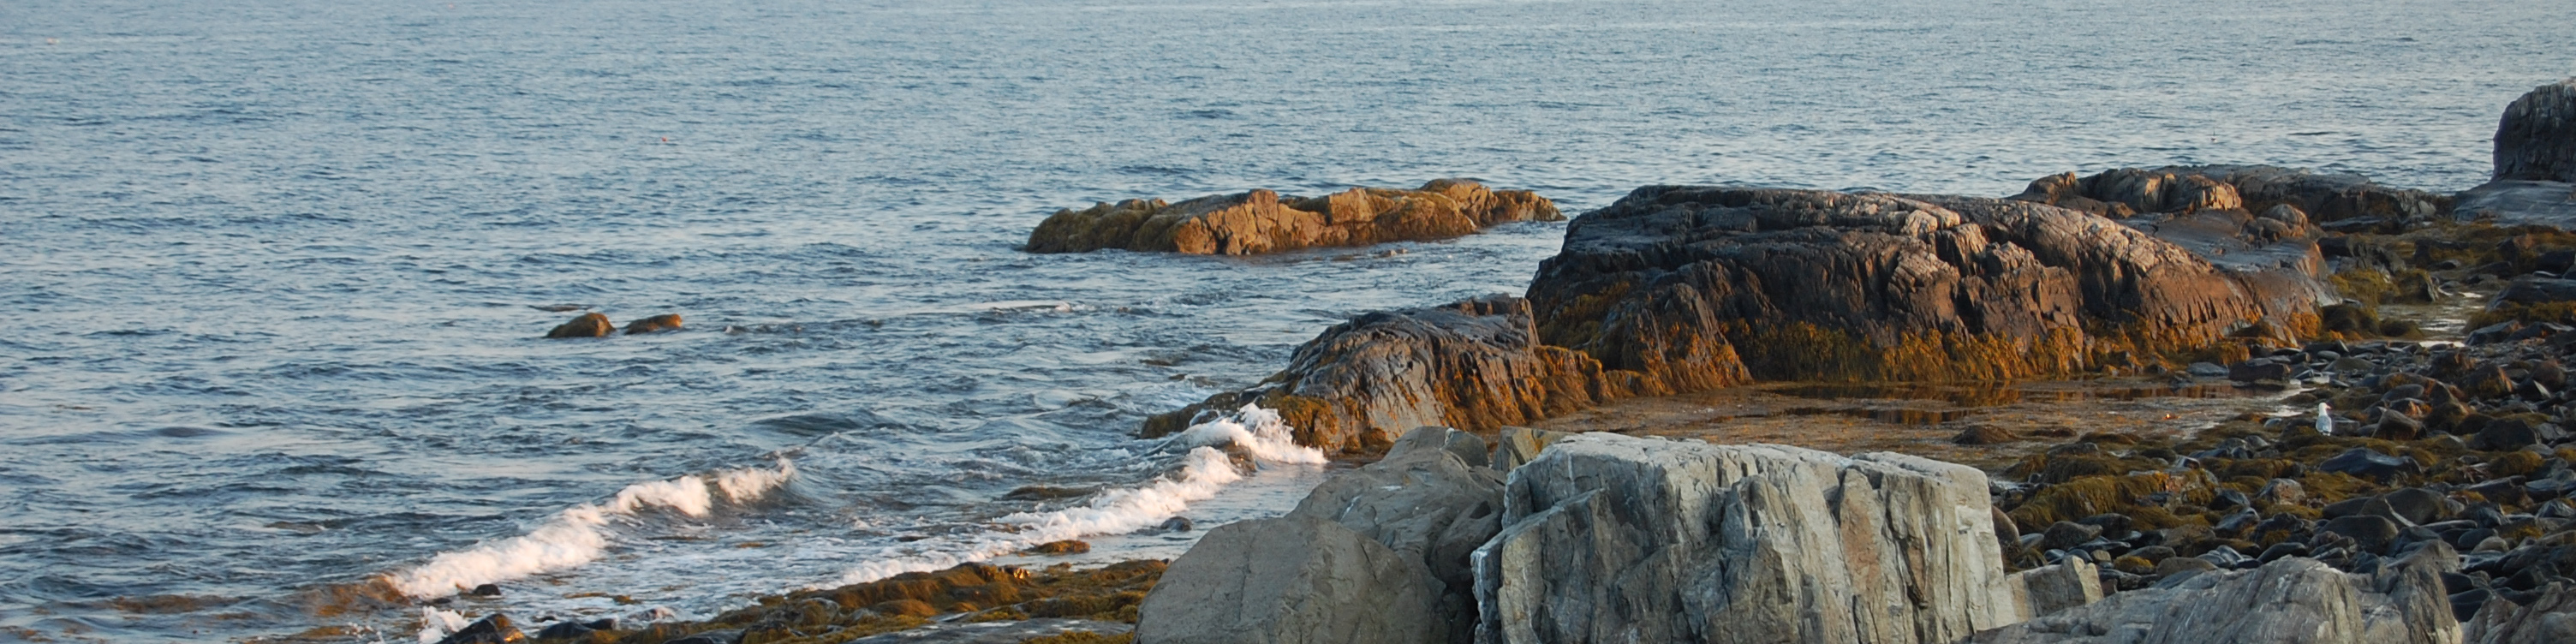 Rocky shoreline with tiny waves rolling in near the seaweed.